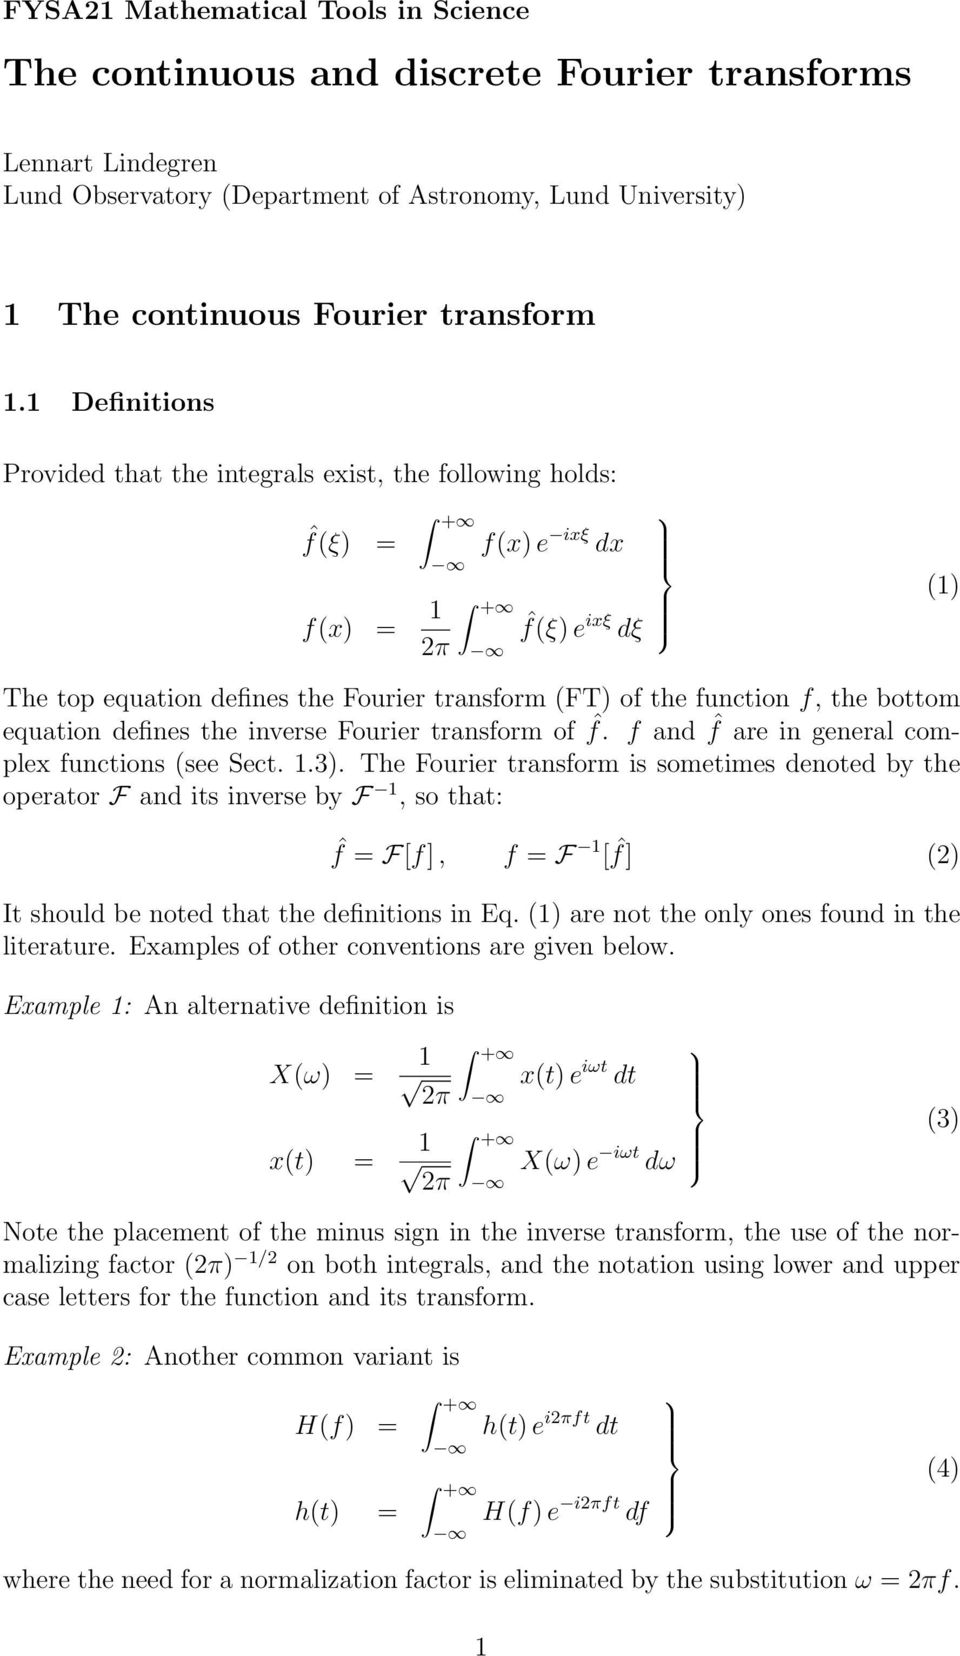 bottom equation defines the inverse Fourier transform of ˆf. f and ˆf are in general complex functions (see Sect. 1.3).